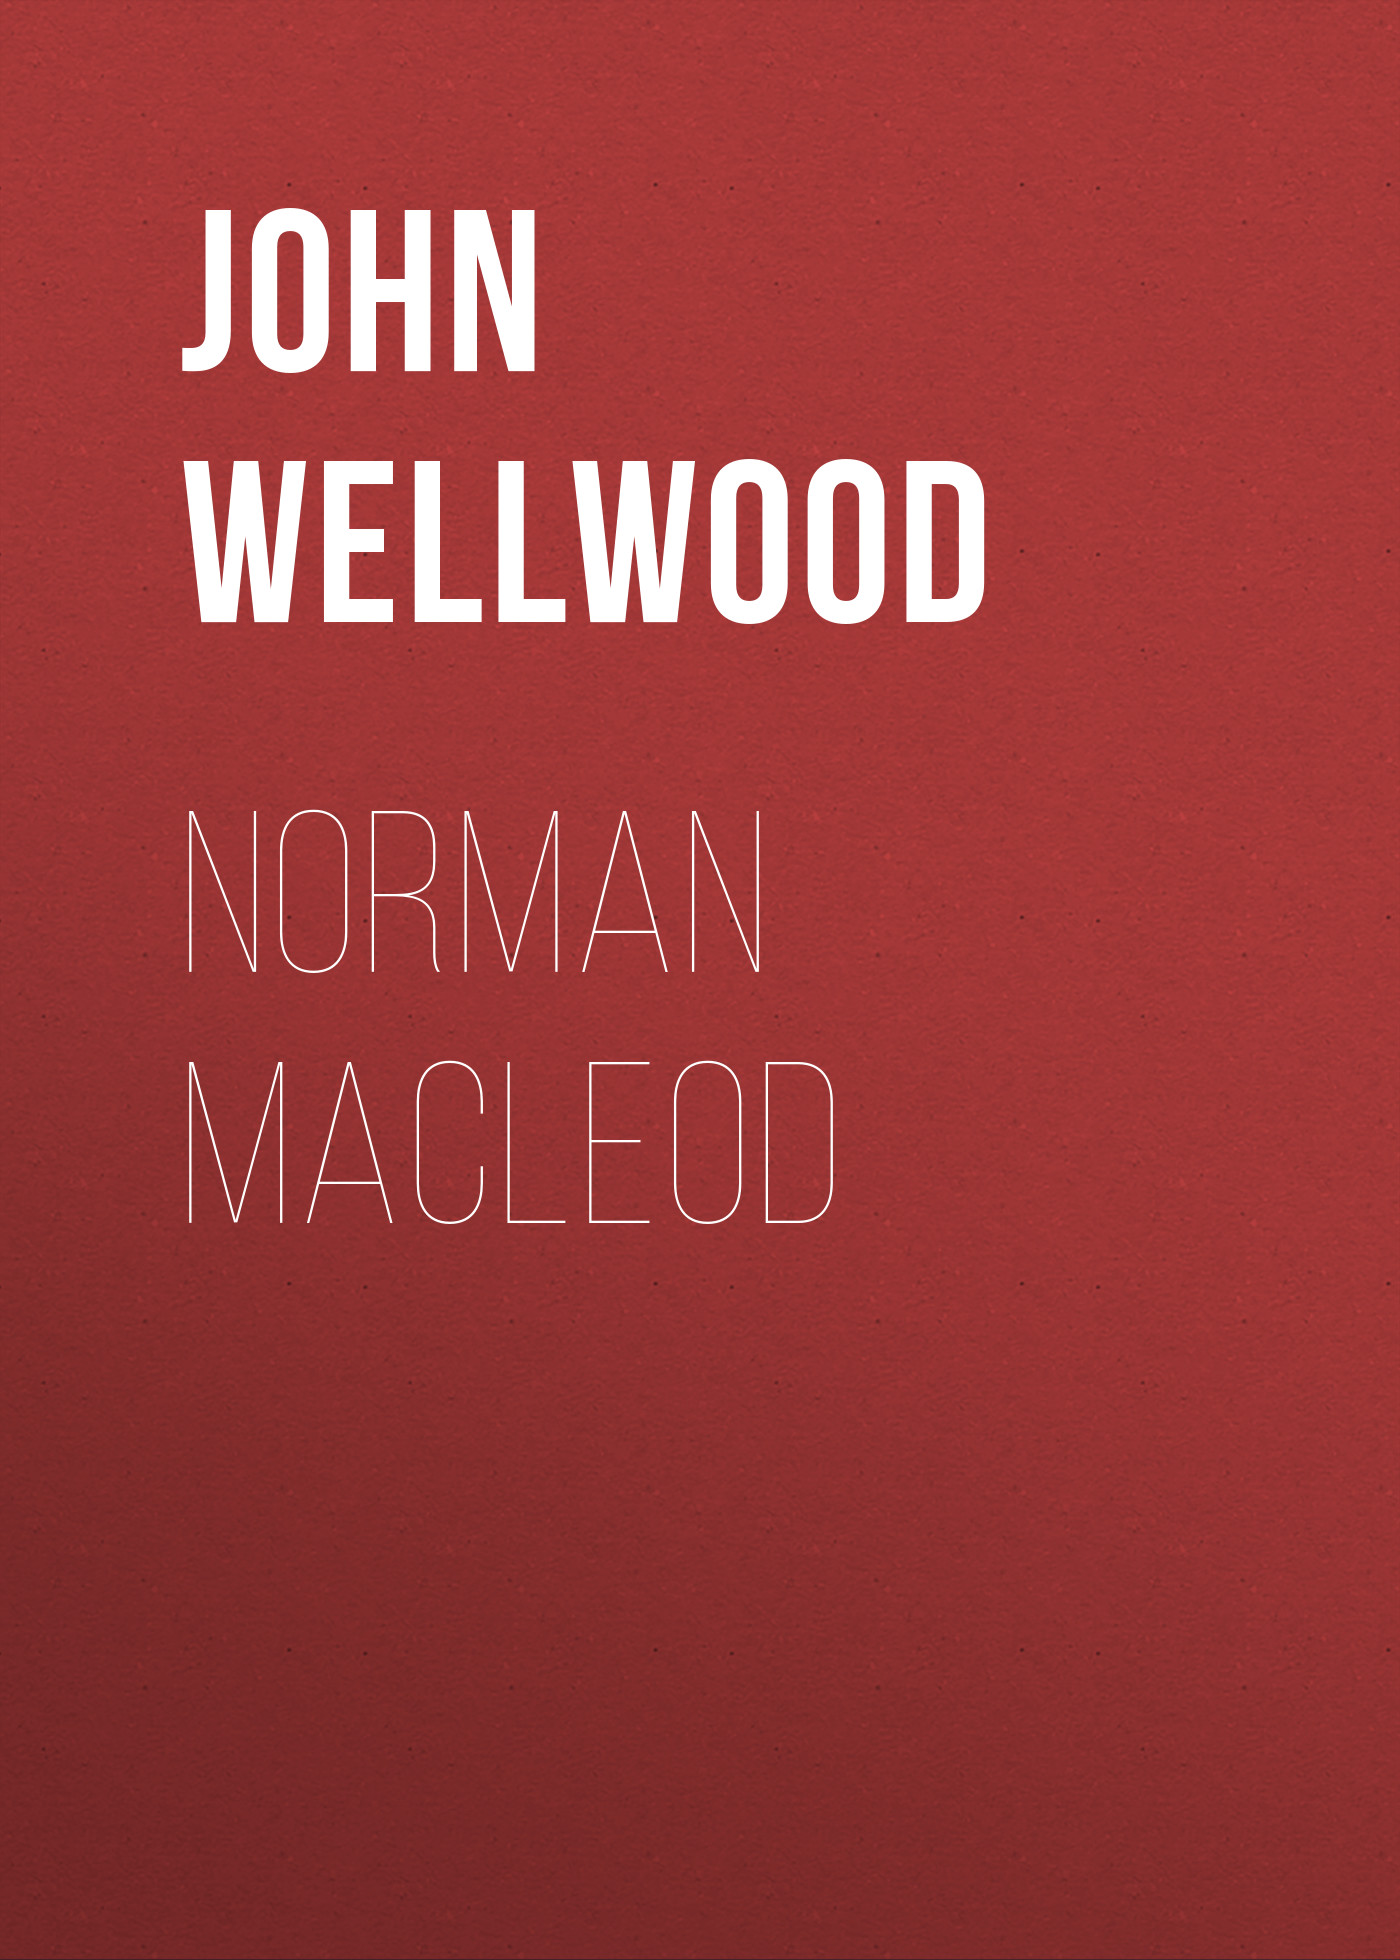 John Wellwood Norman Macleod oxygen norman